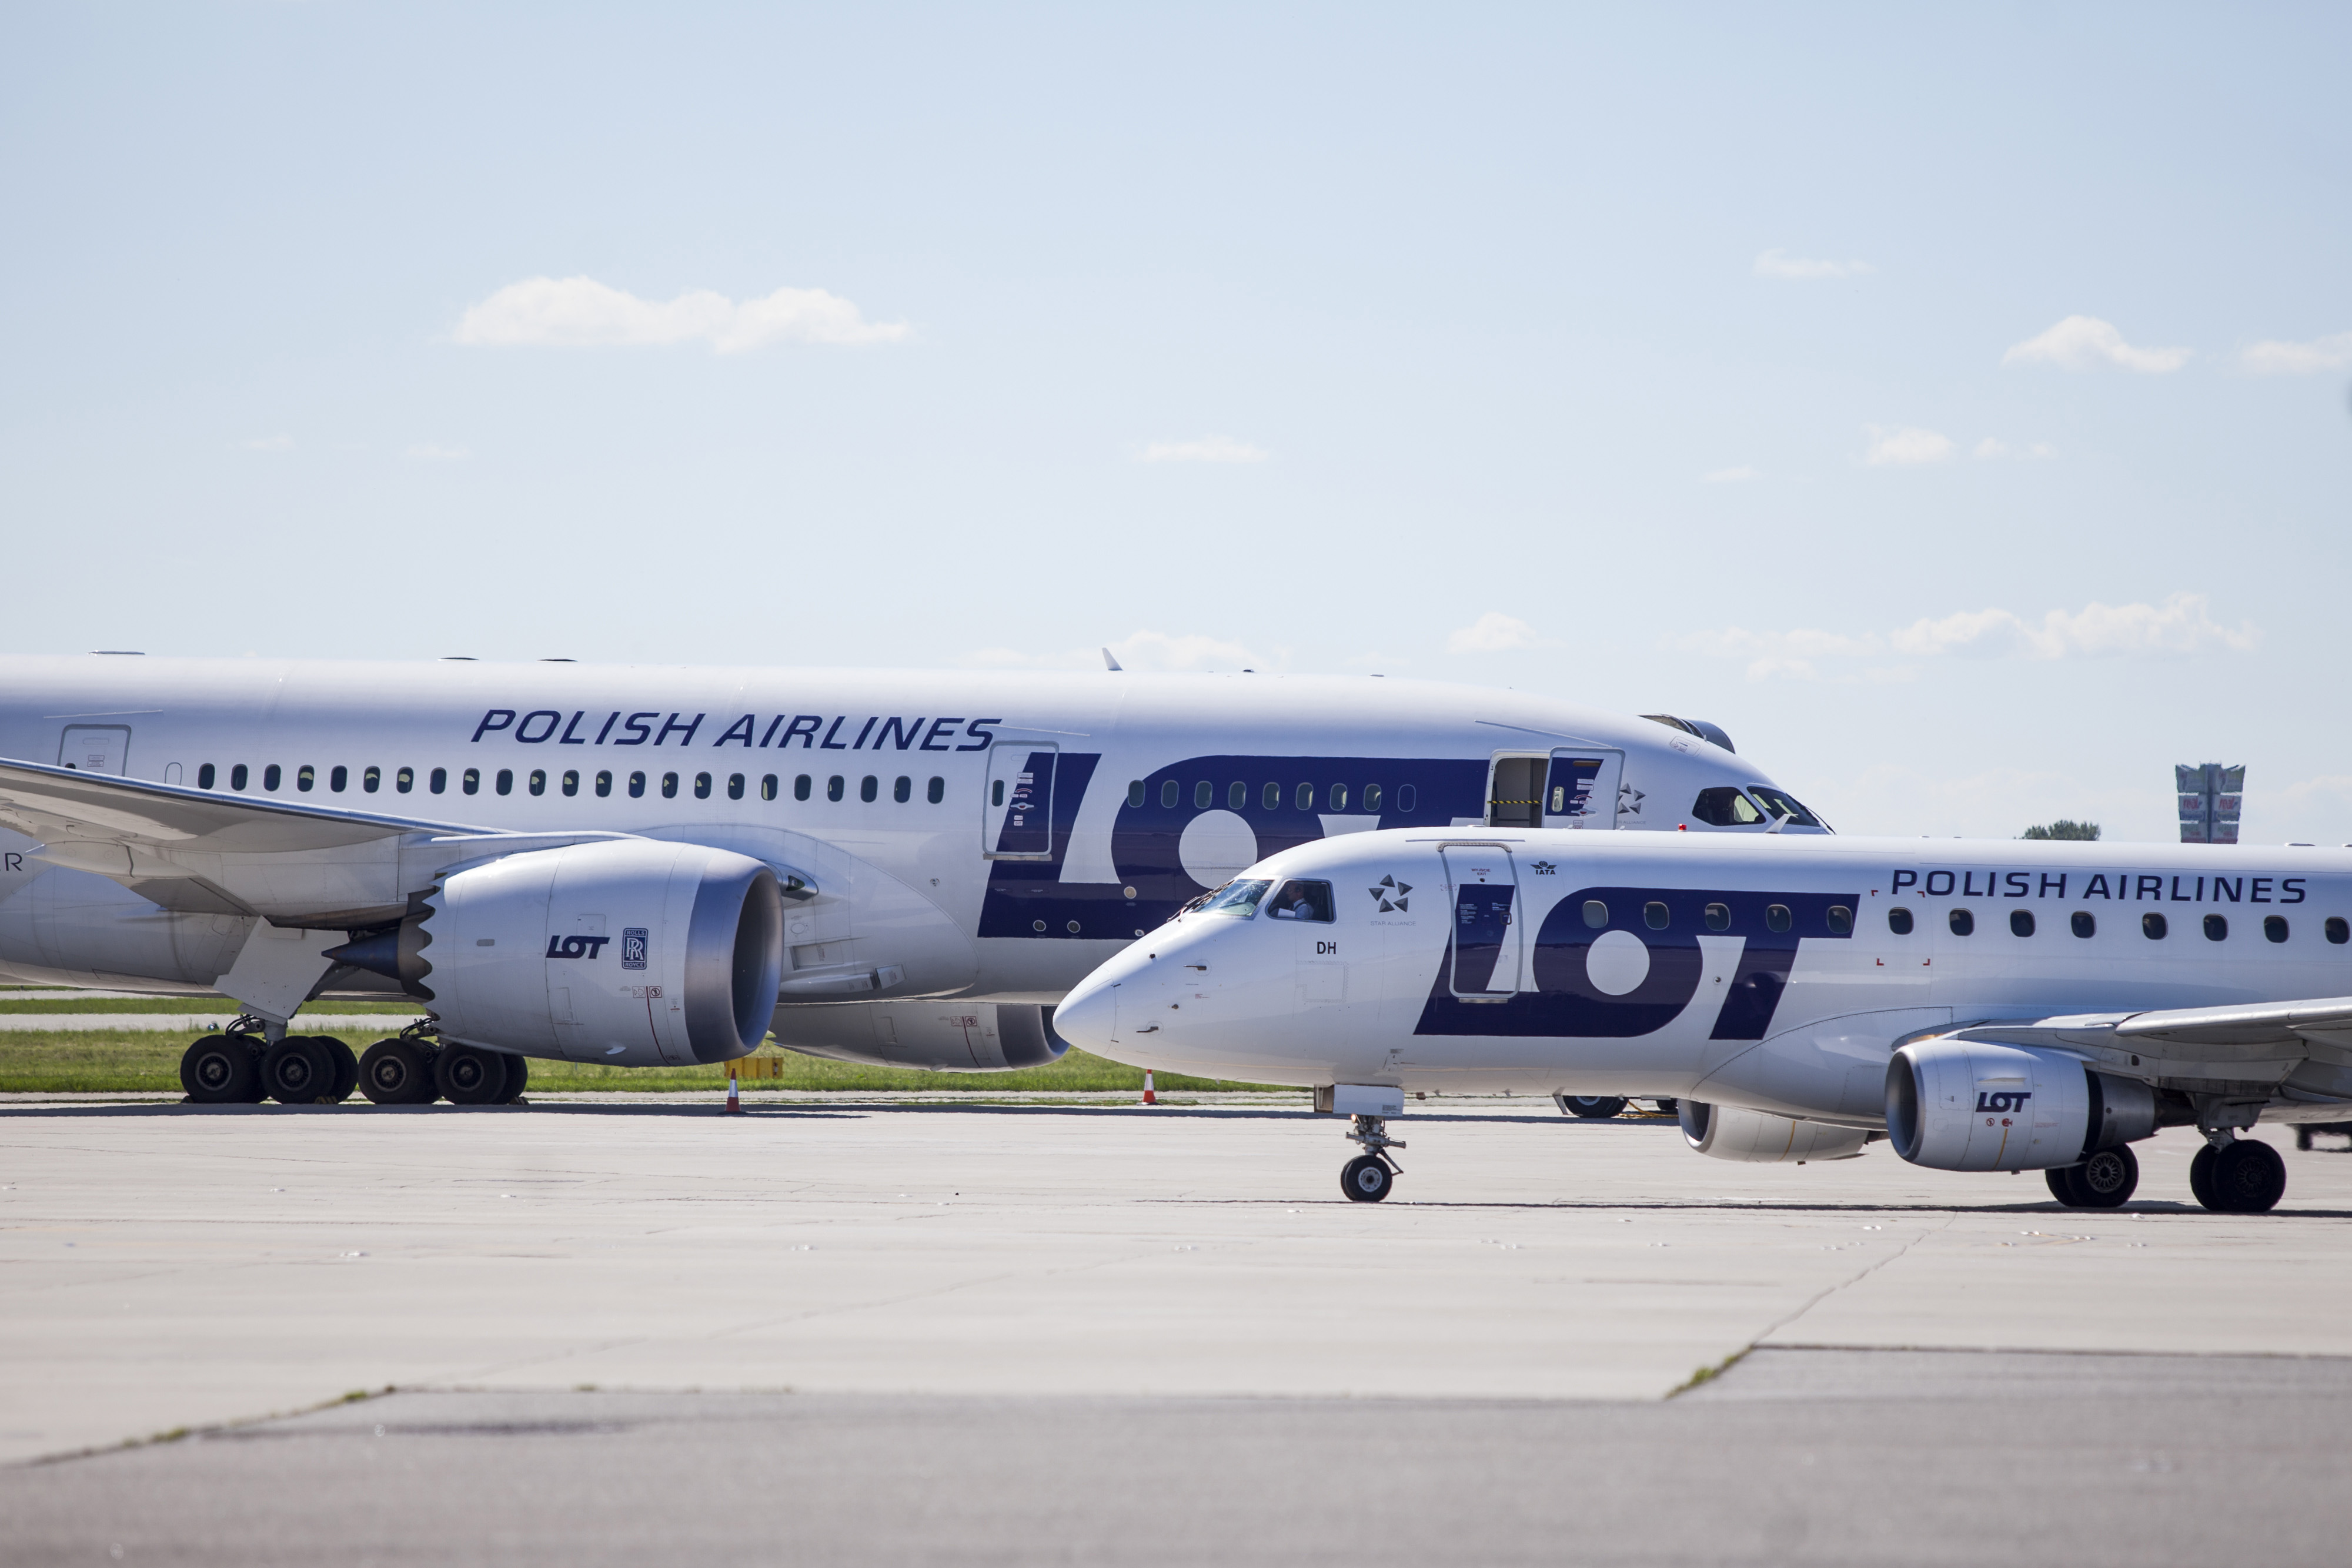 LOT Polish Airlines jetliners sit on the tarmac at Warsaw Frederic Chopin Airport in June 2013.   BLOOMBERG